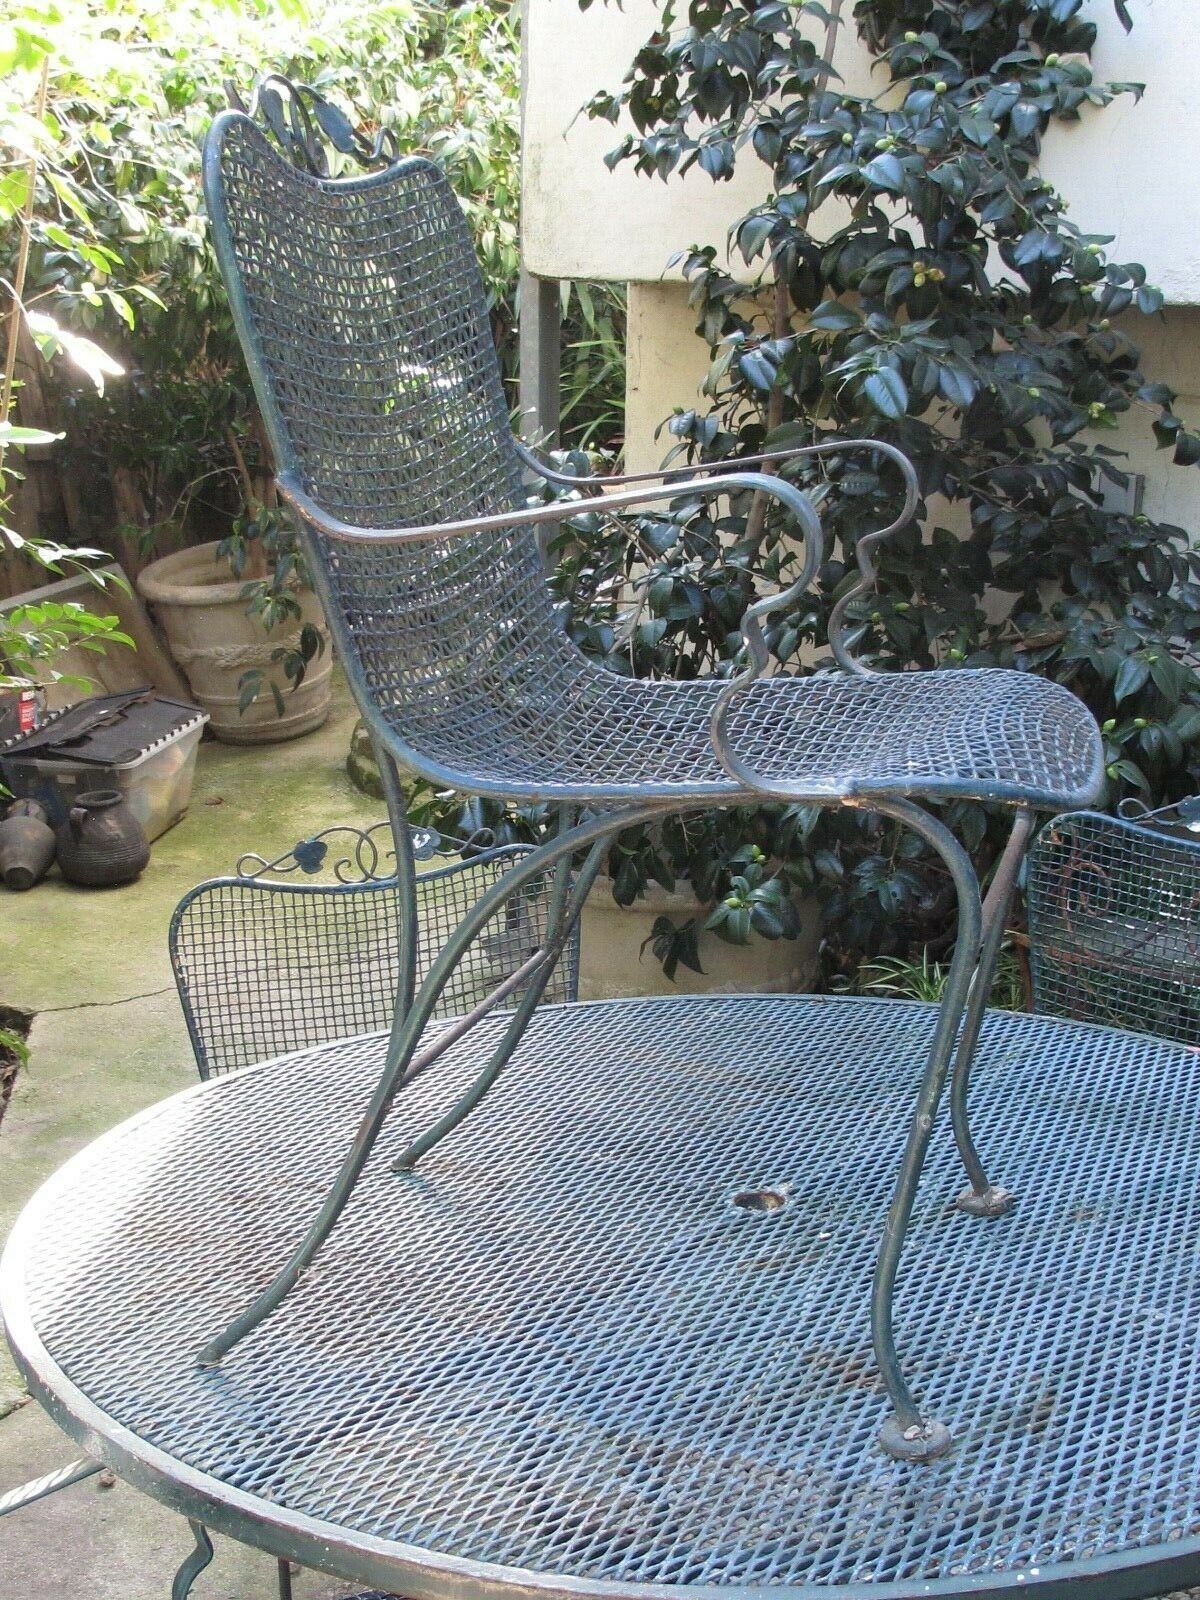 Antique Wrought Iron Furniture Prices Luxury Vintage 5 Piece Woodard Wrought Iron Patio Table and 4 Chairs